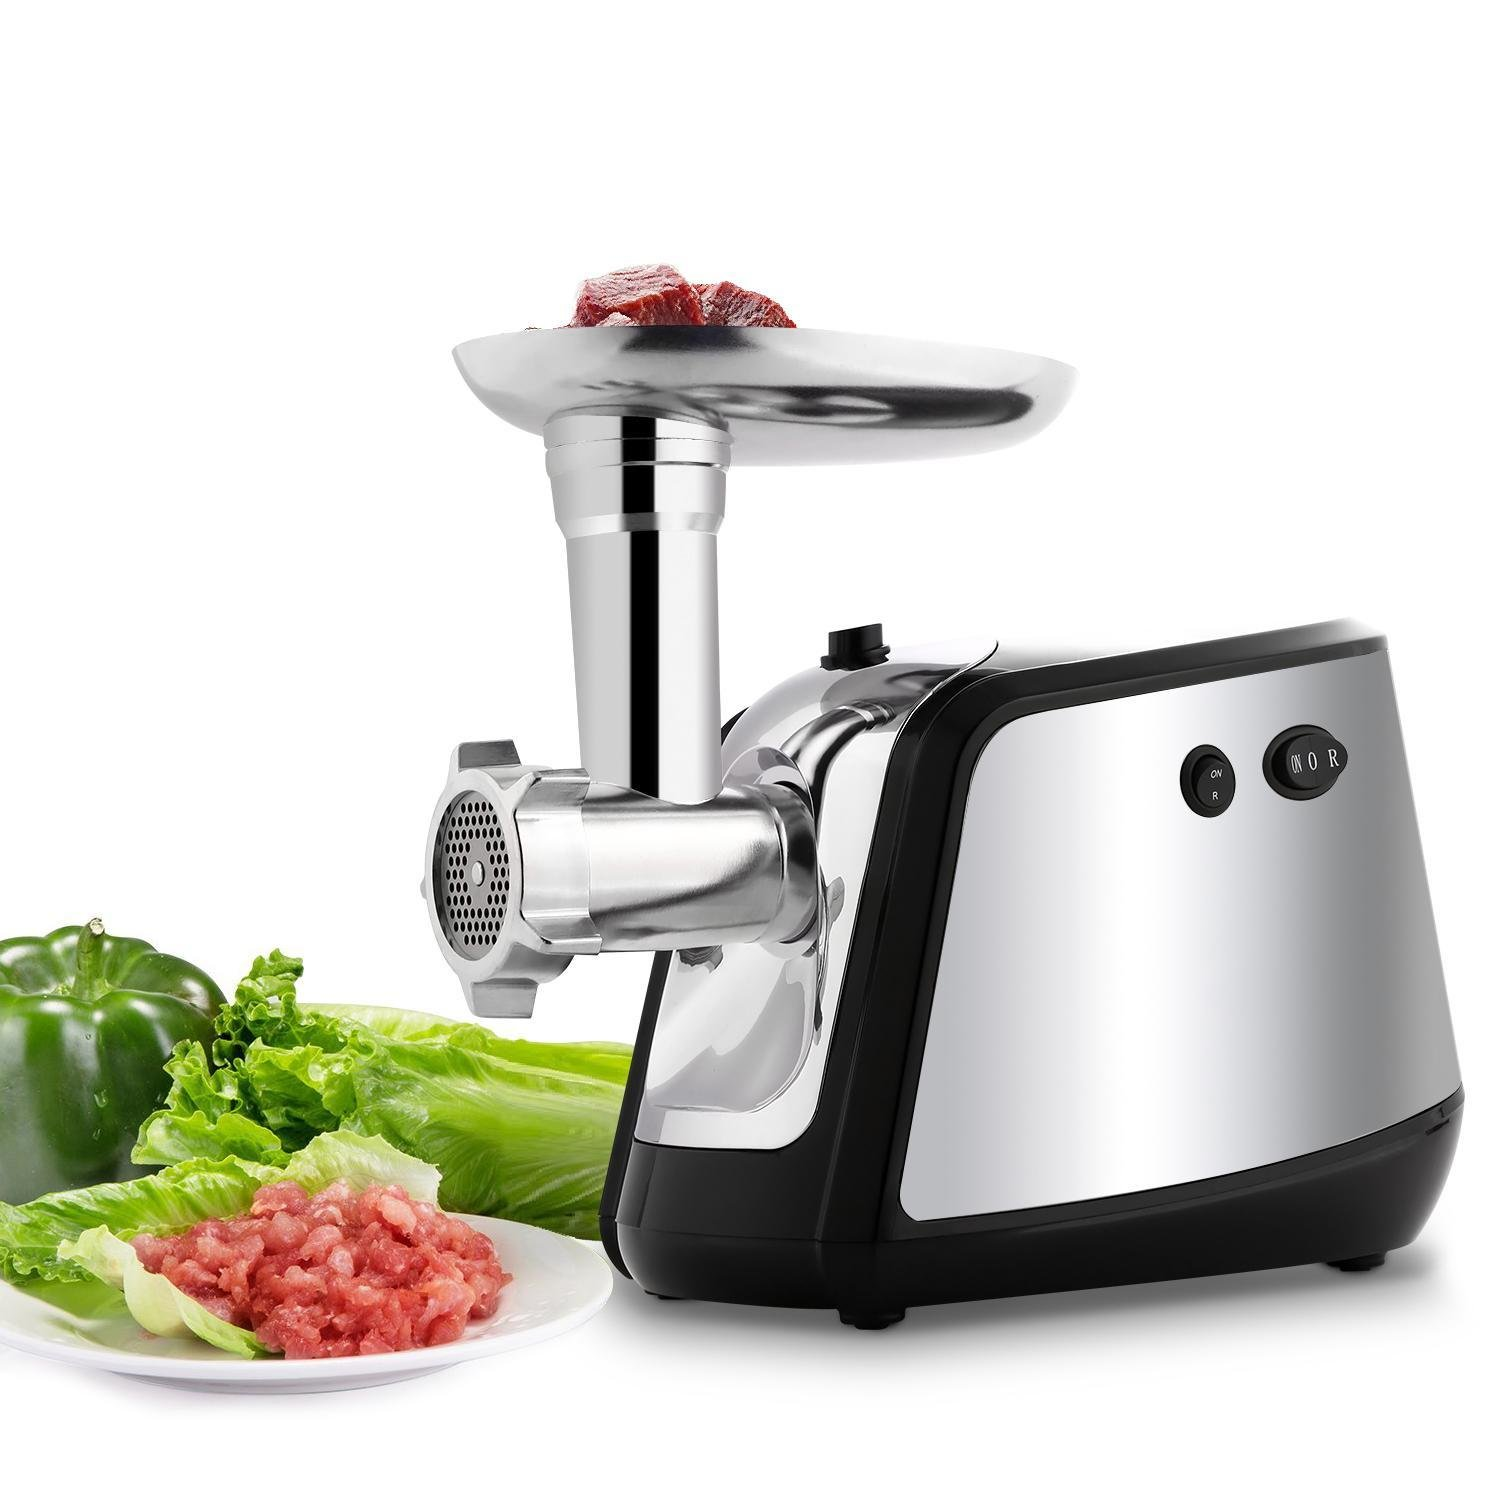 Cosway Electronic Meat Grinder - Stainless Steel Sausage Maker Mincing Machine,1000 Watts Max. by Cosway